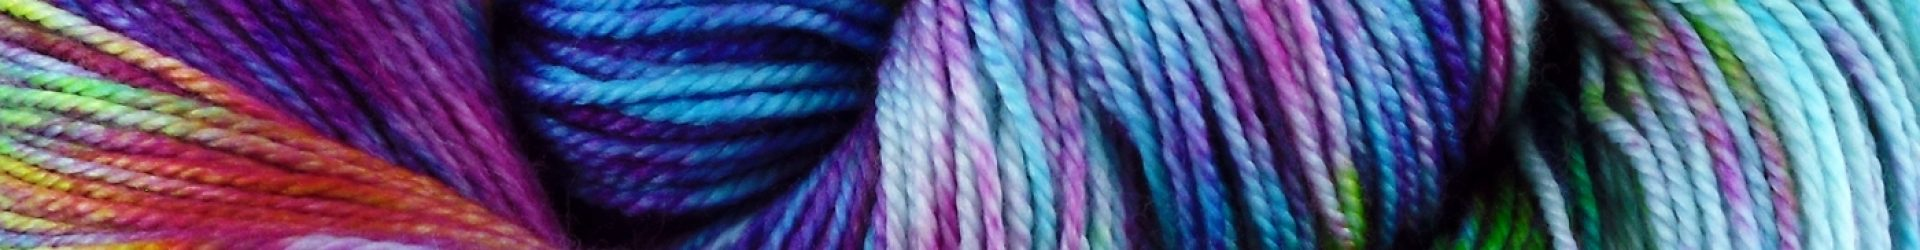 Mashmellow Rino – Hush Money (worsted weight)